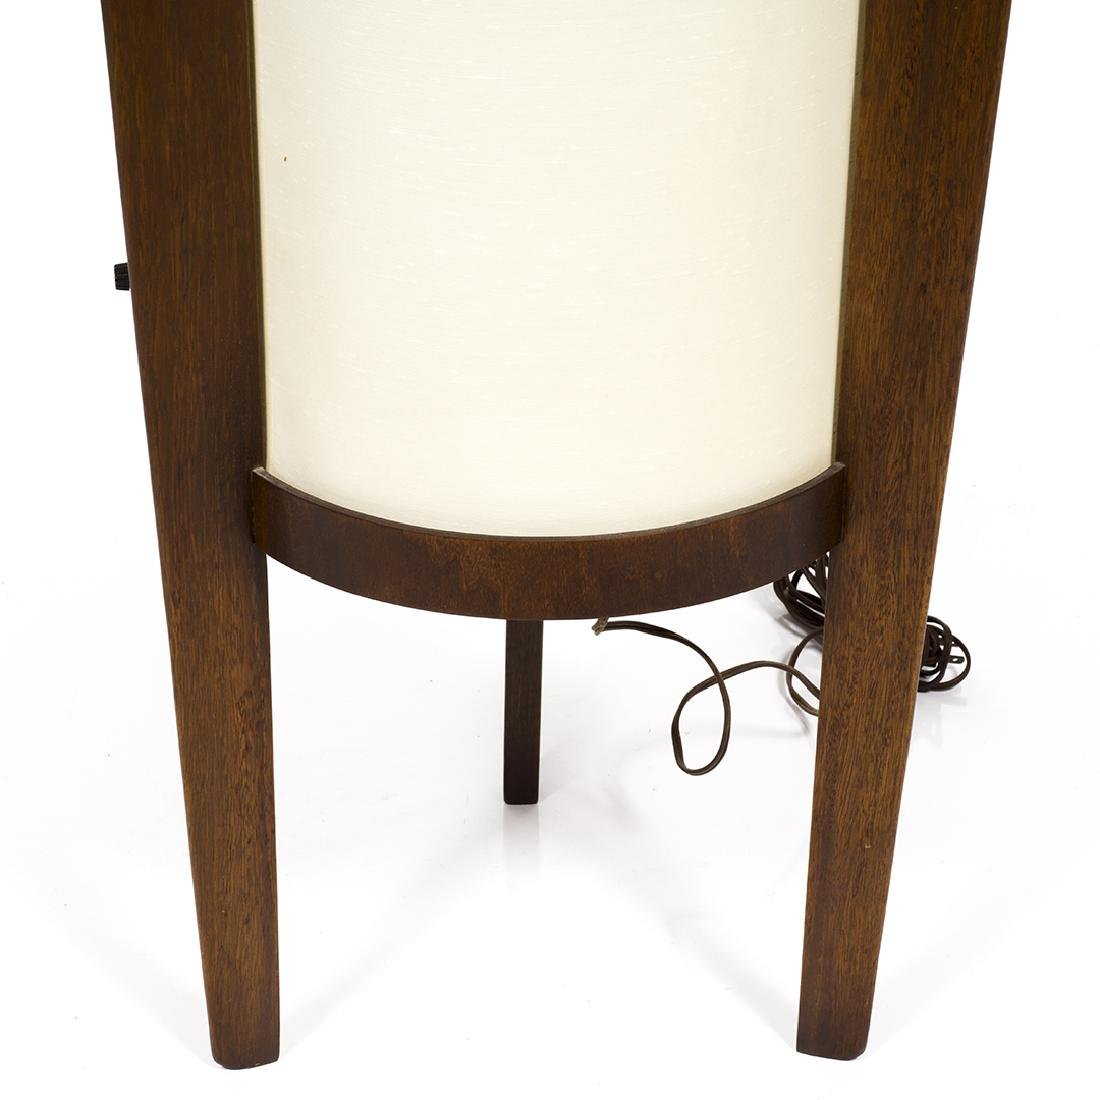 Modeline Floor Lamp - 4